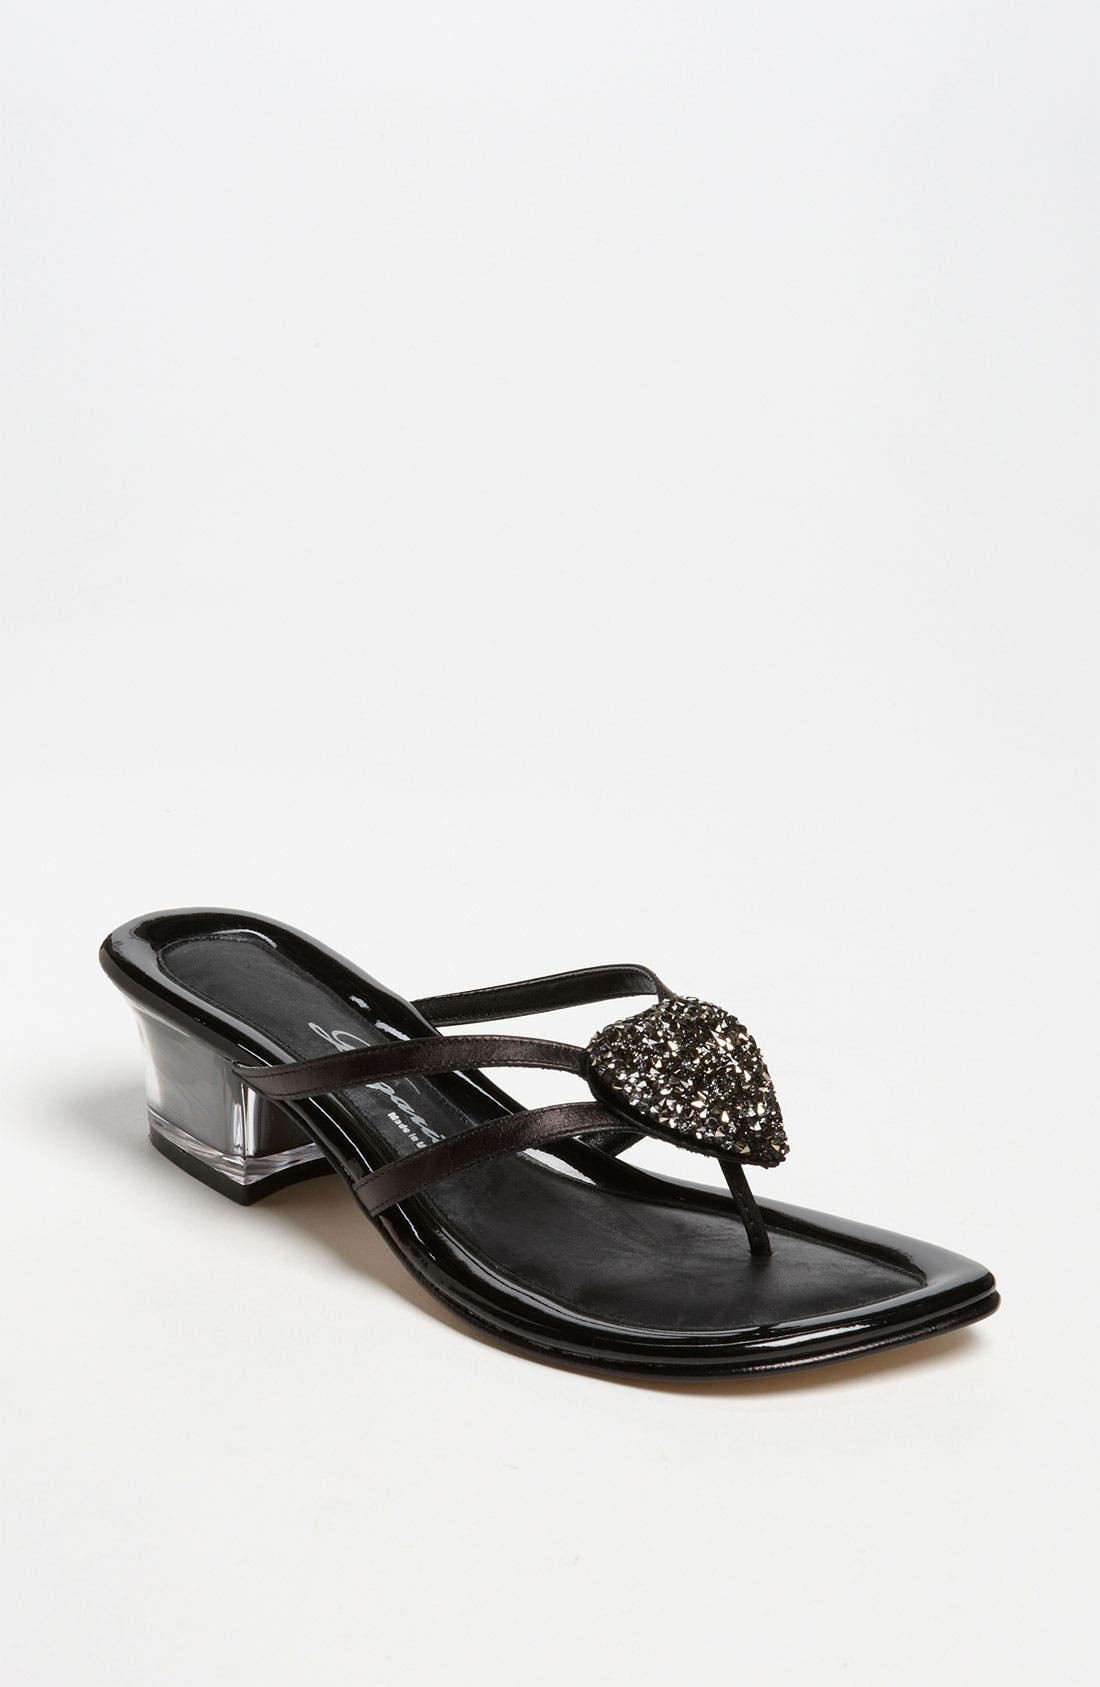 Alternate Image 1 Selected - Dezario 'Desire' Sandal